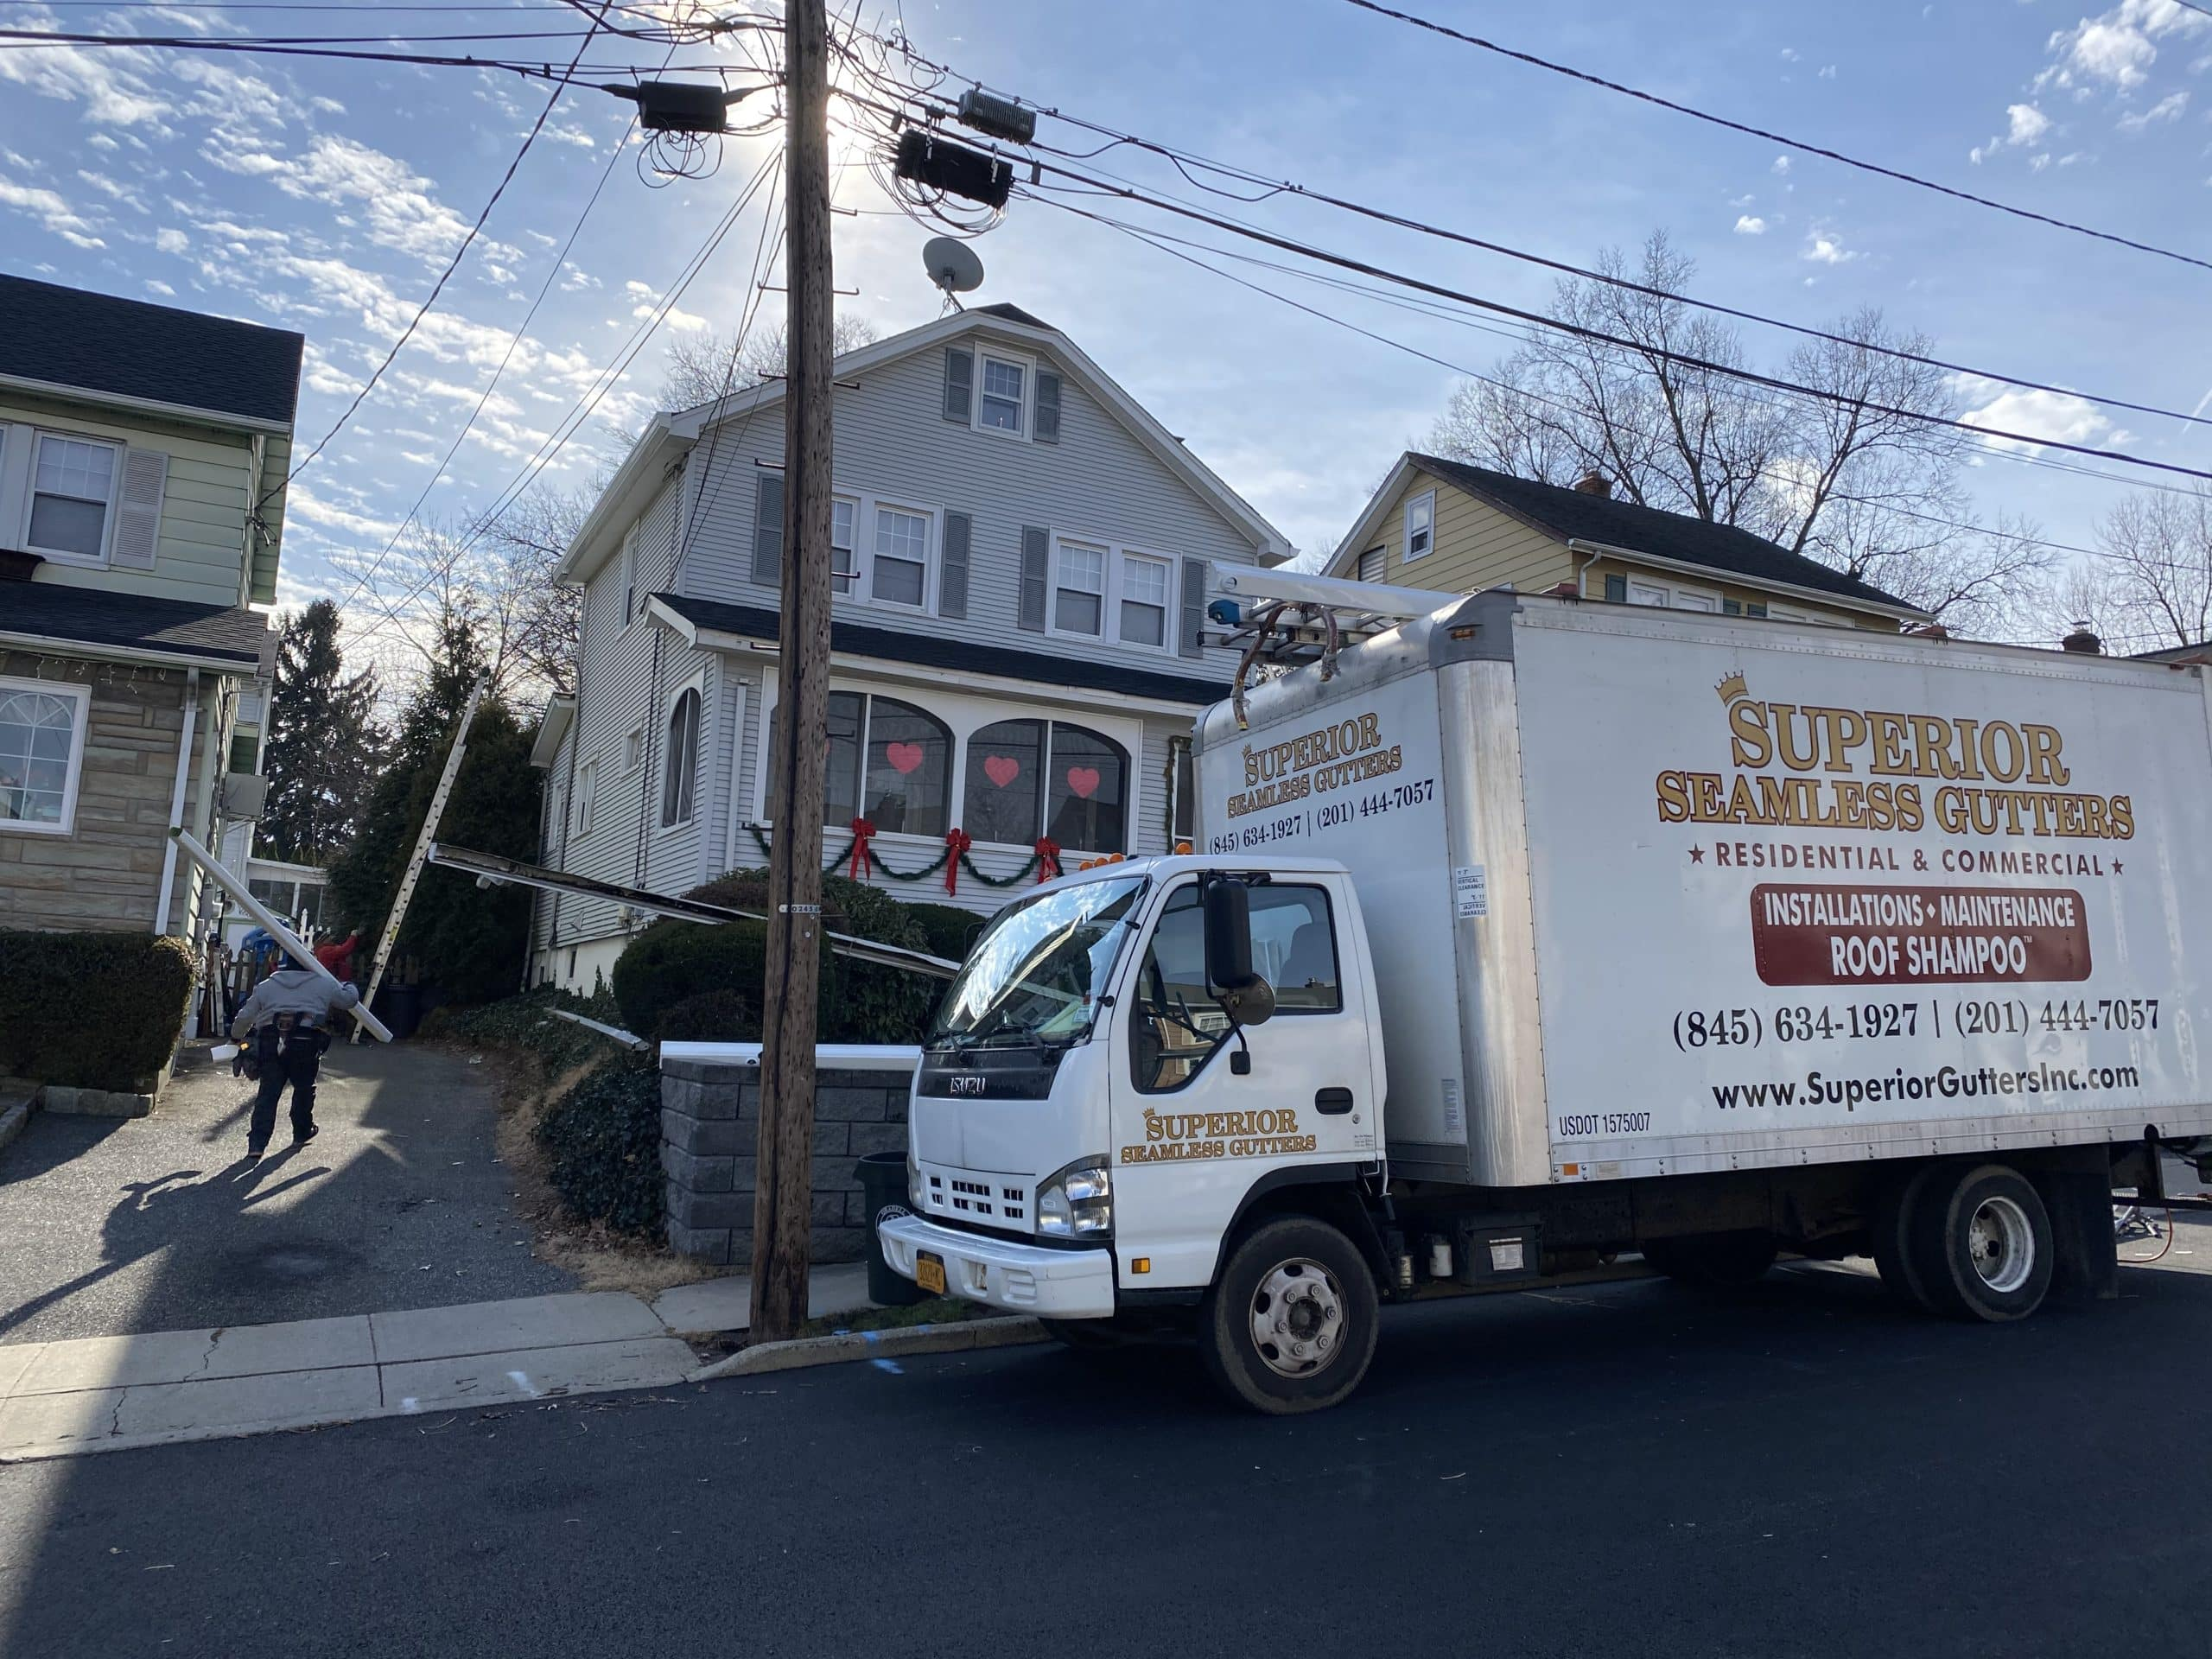 gutters and gutter covers installation in oradell nj by superior seamless gutters